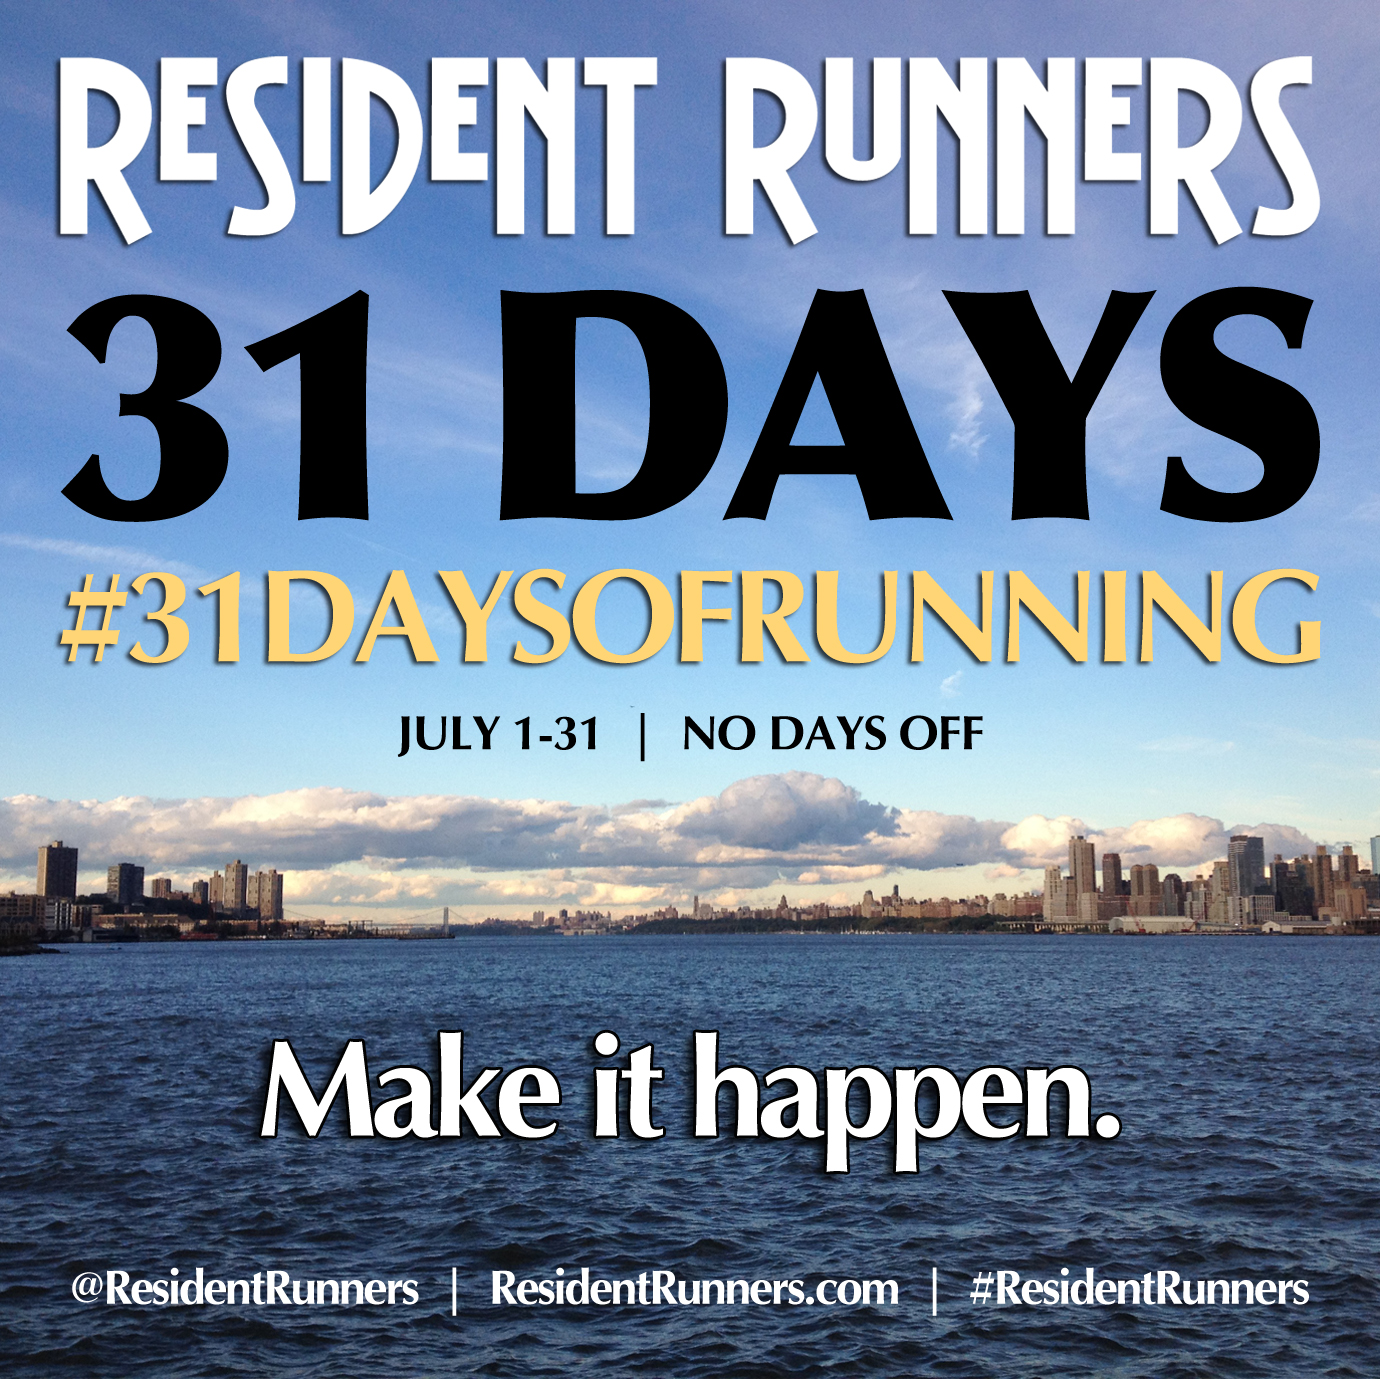 30_days_of_running_flyer_color.jpg